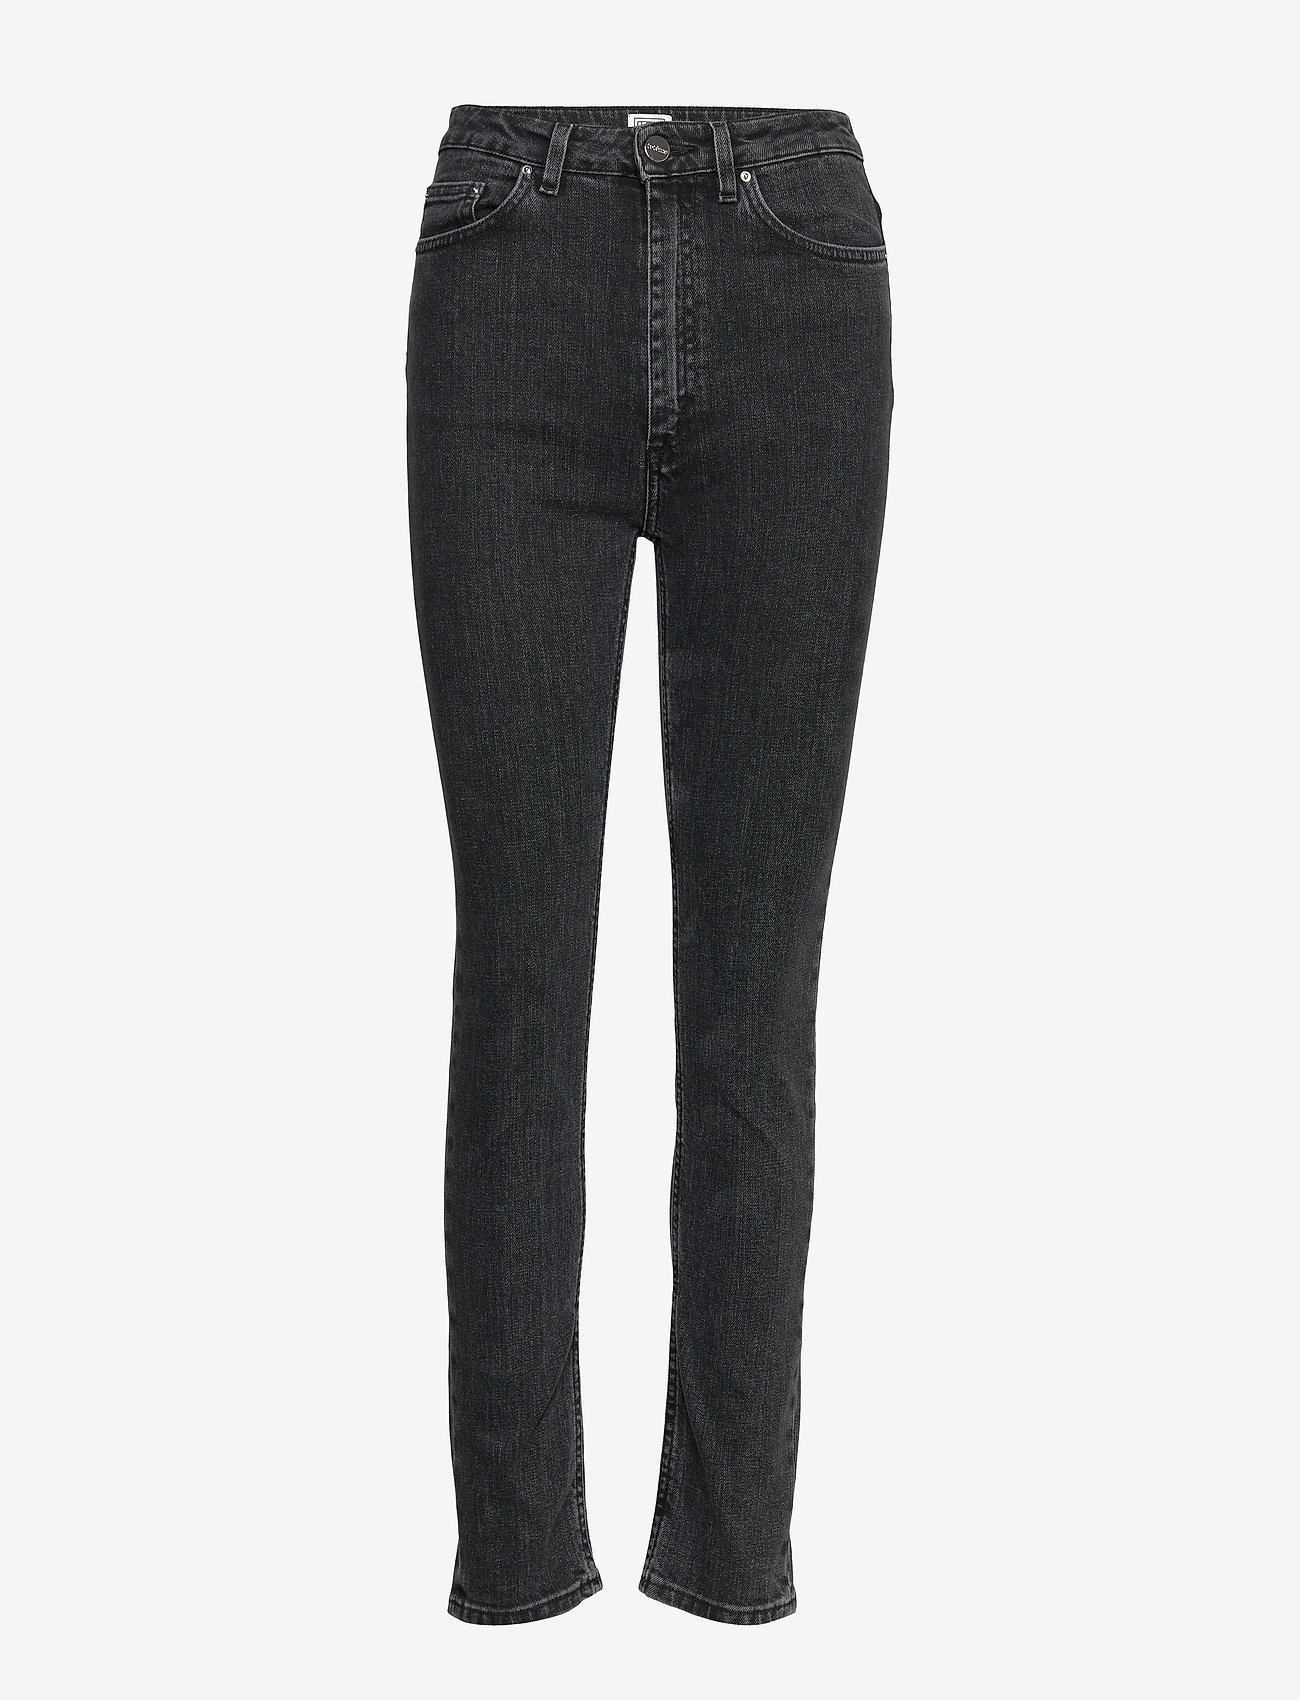 Totême - NEW STANDARD DENIM - slim jeans - grey wash 300 - 0